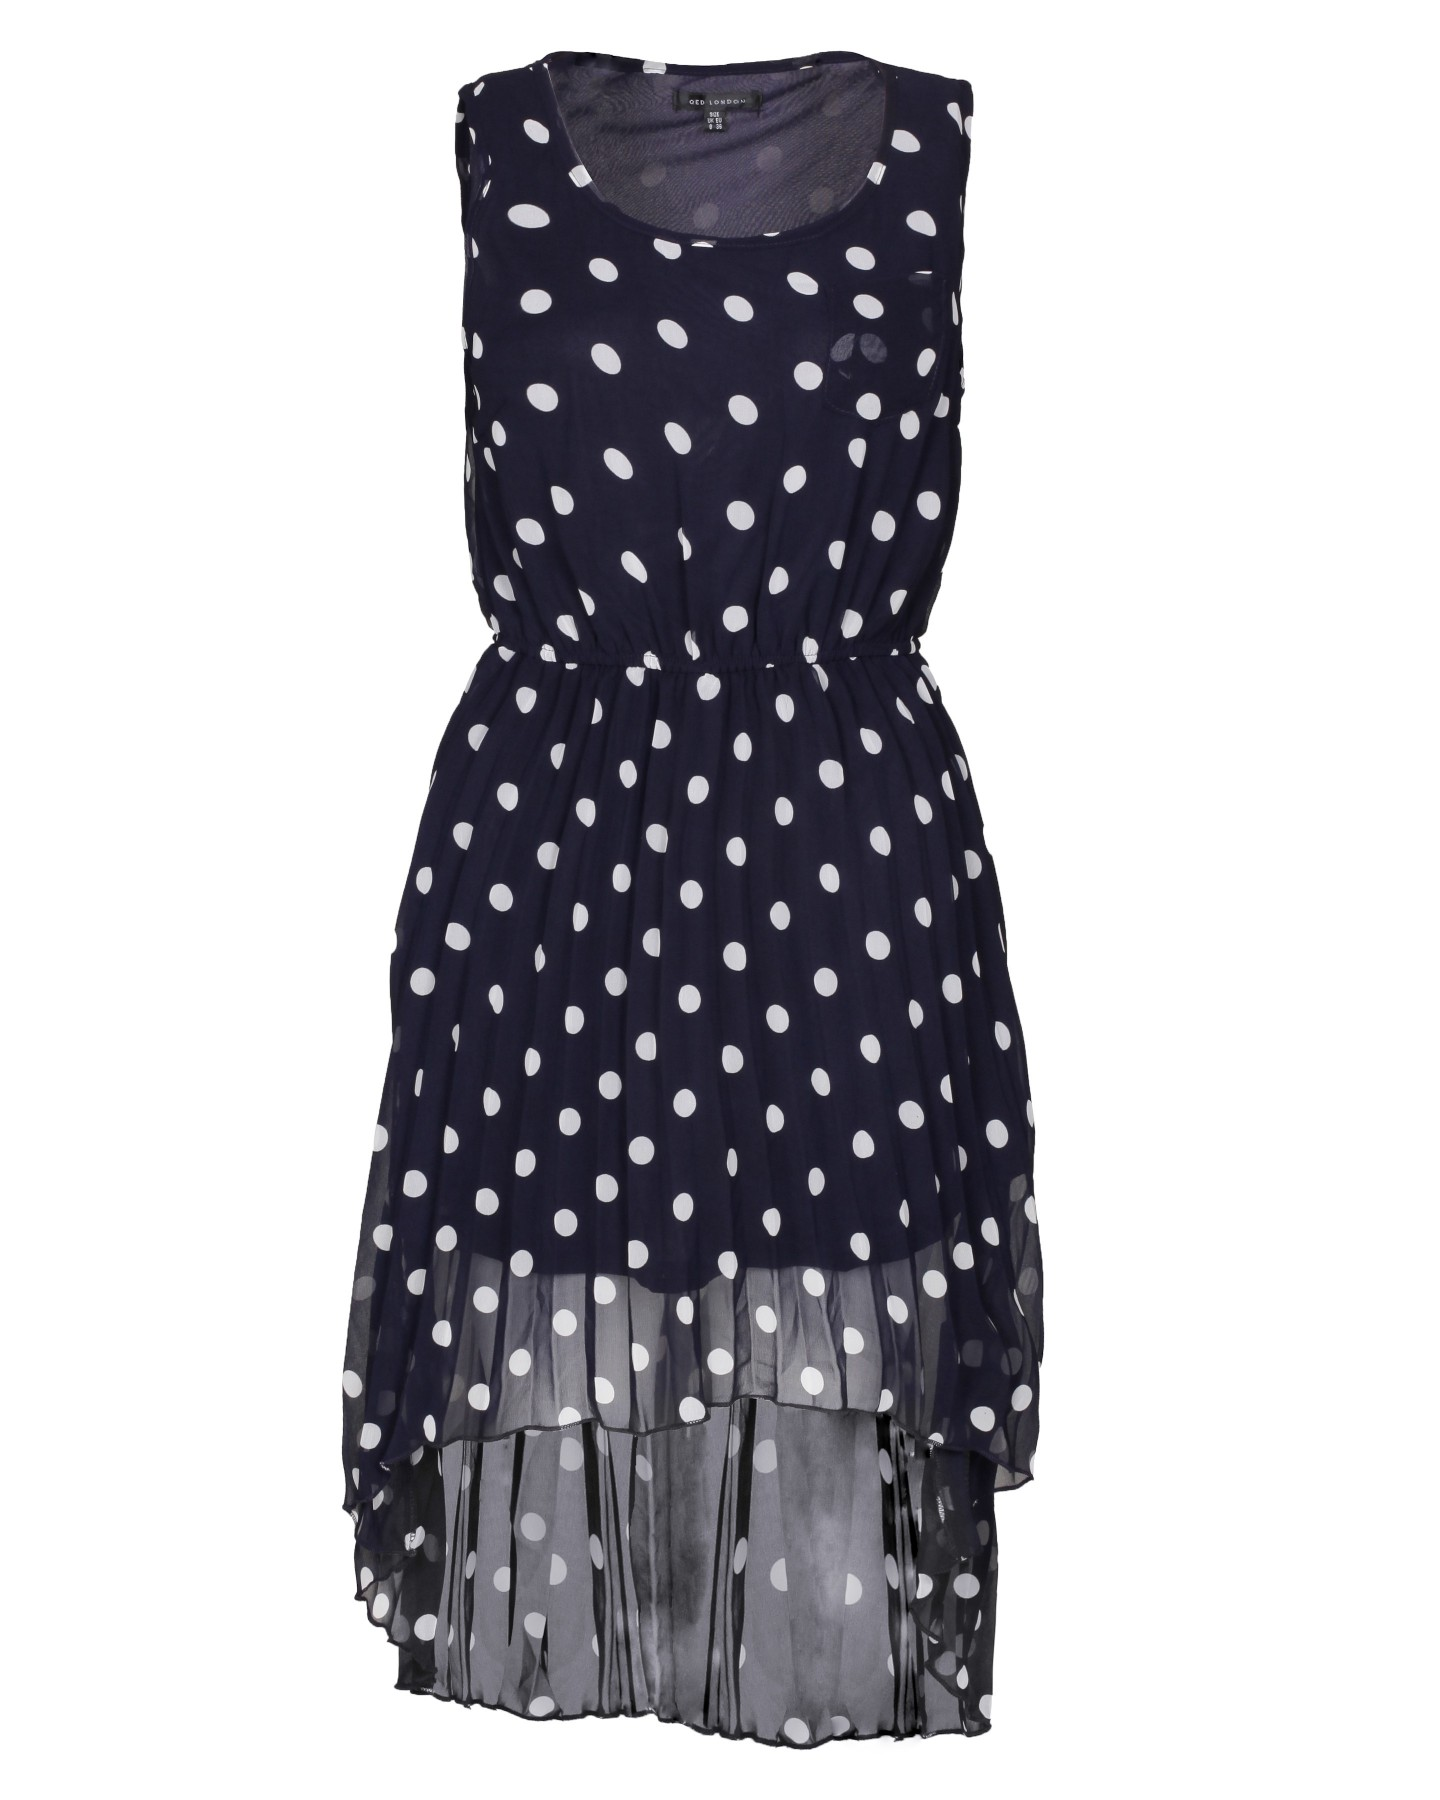 Find great deals on eBay for spotty dress. Shop with confidence.